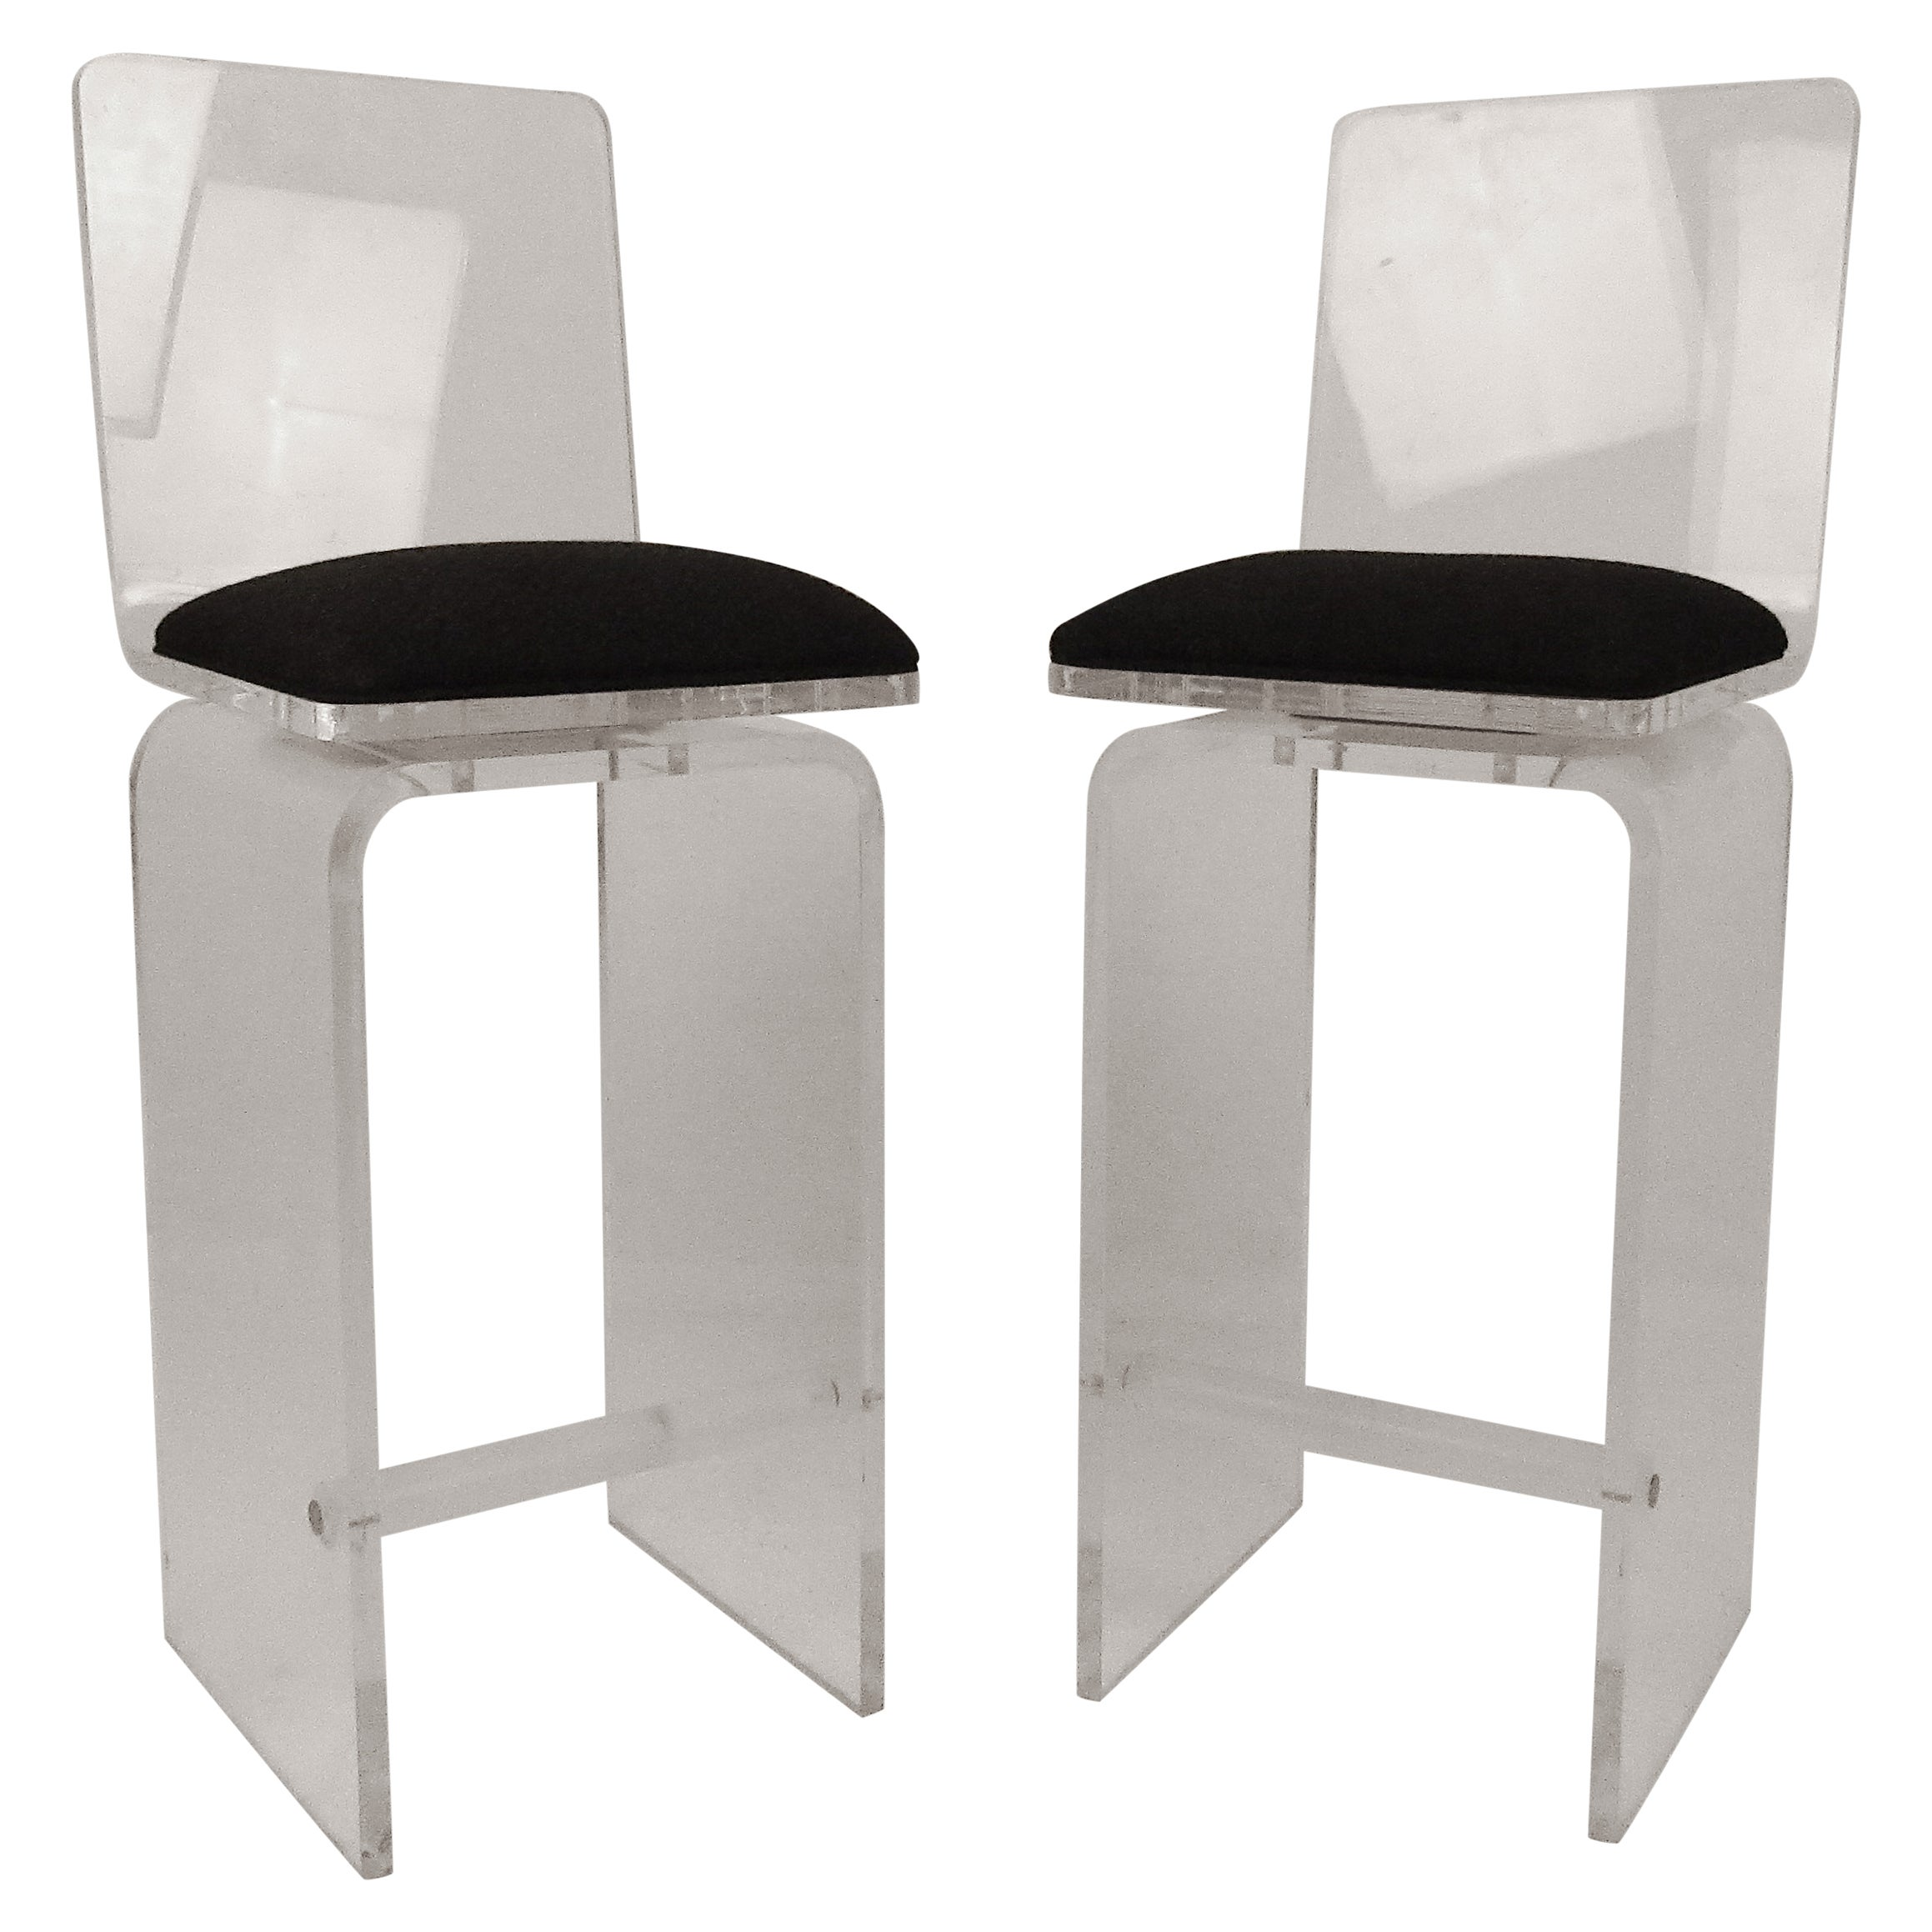 Pair of Vintage 1970s Lucite Swivel Bar Stools